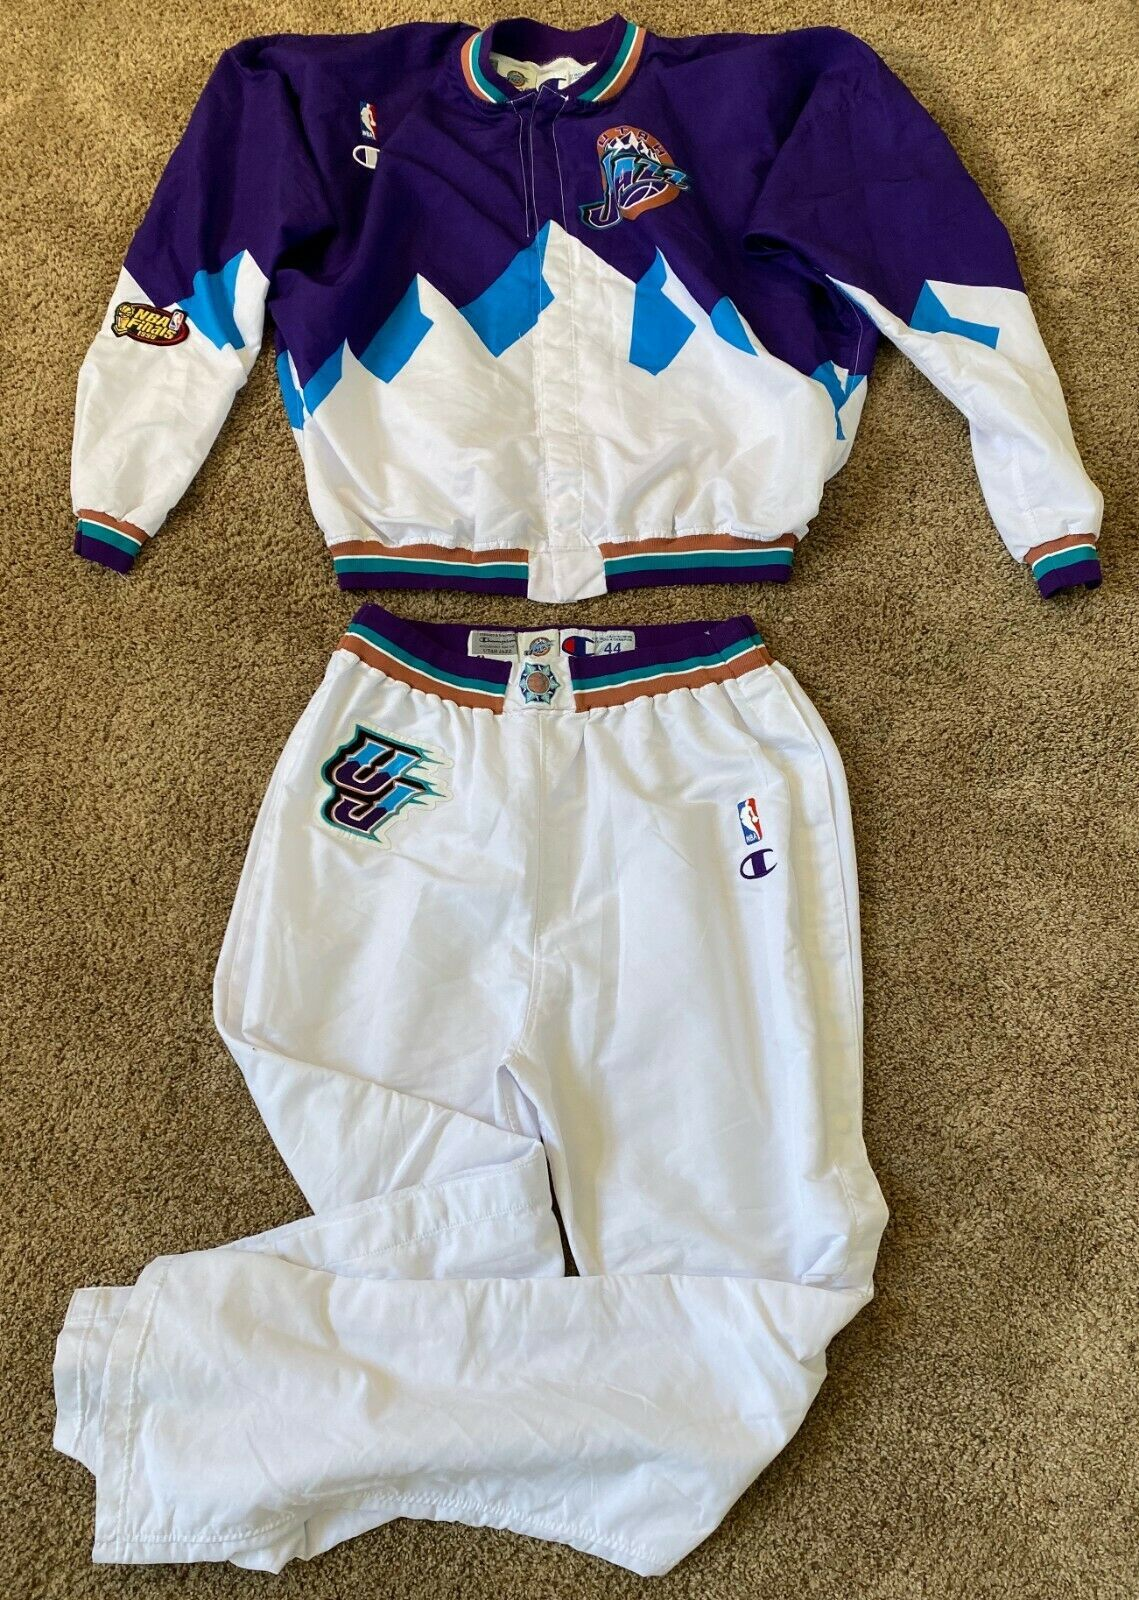 Primary image for CHRIS MORRIS 1998 NBA FINALS UTAH JAZZ MOUNTAIN GAME USED JACKET PANTS JERSEY